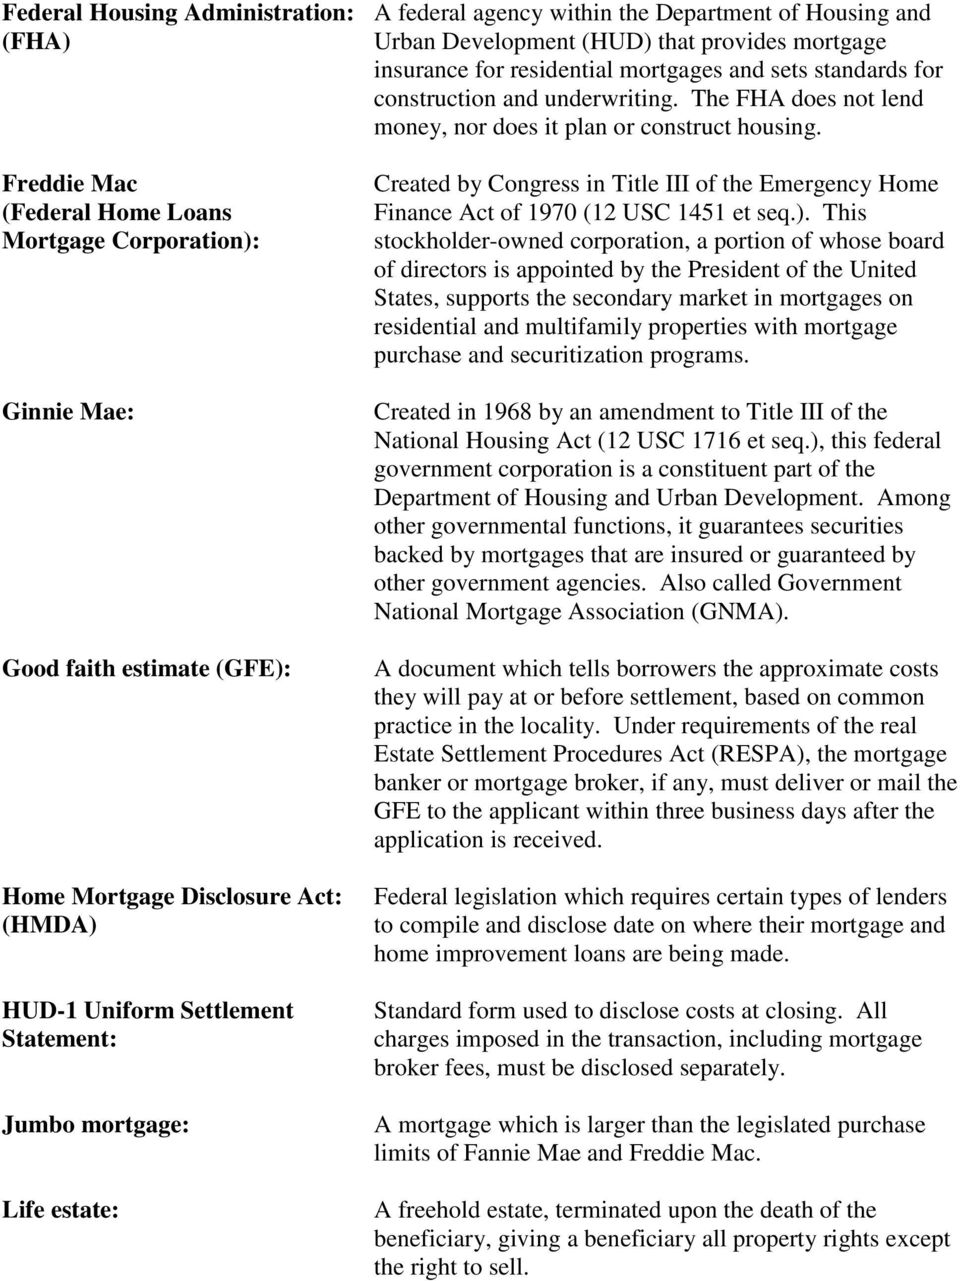 Freddie Mac (Federal Home Loans Mortgage Corporation): Ginnie Mae: Good faith estimate (GFE): Home Mortgage Disclosure Act: (HMDA) HUD-1 Uniform Settlement Statement: Jumbo mortgage: Life estate: